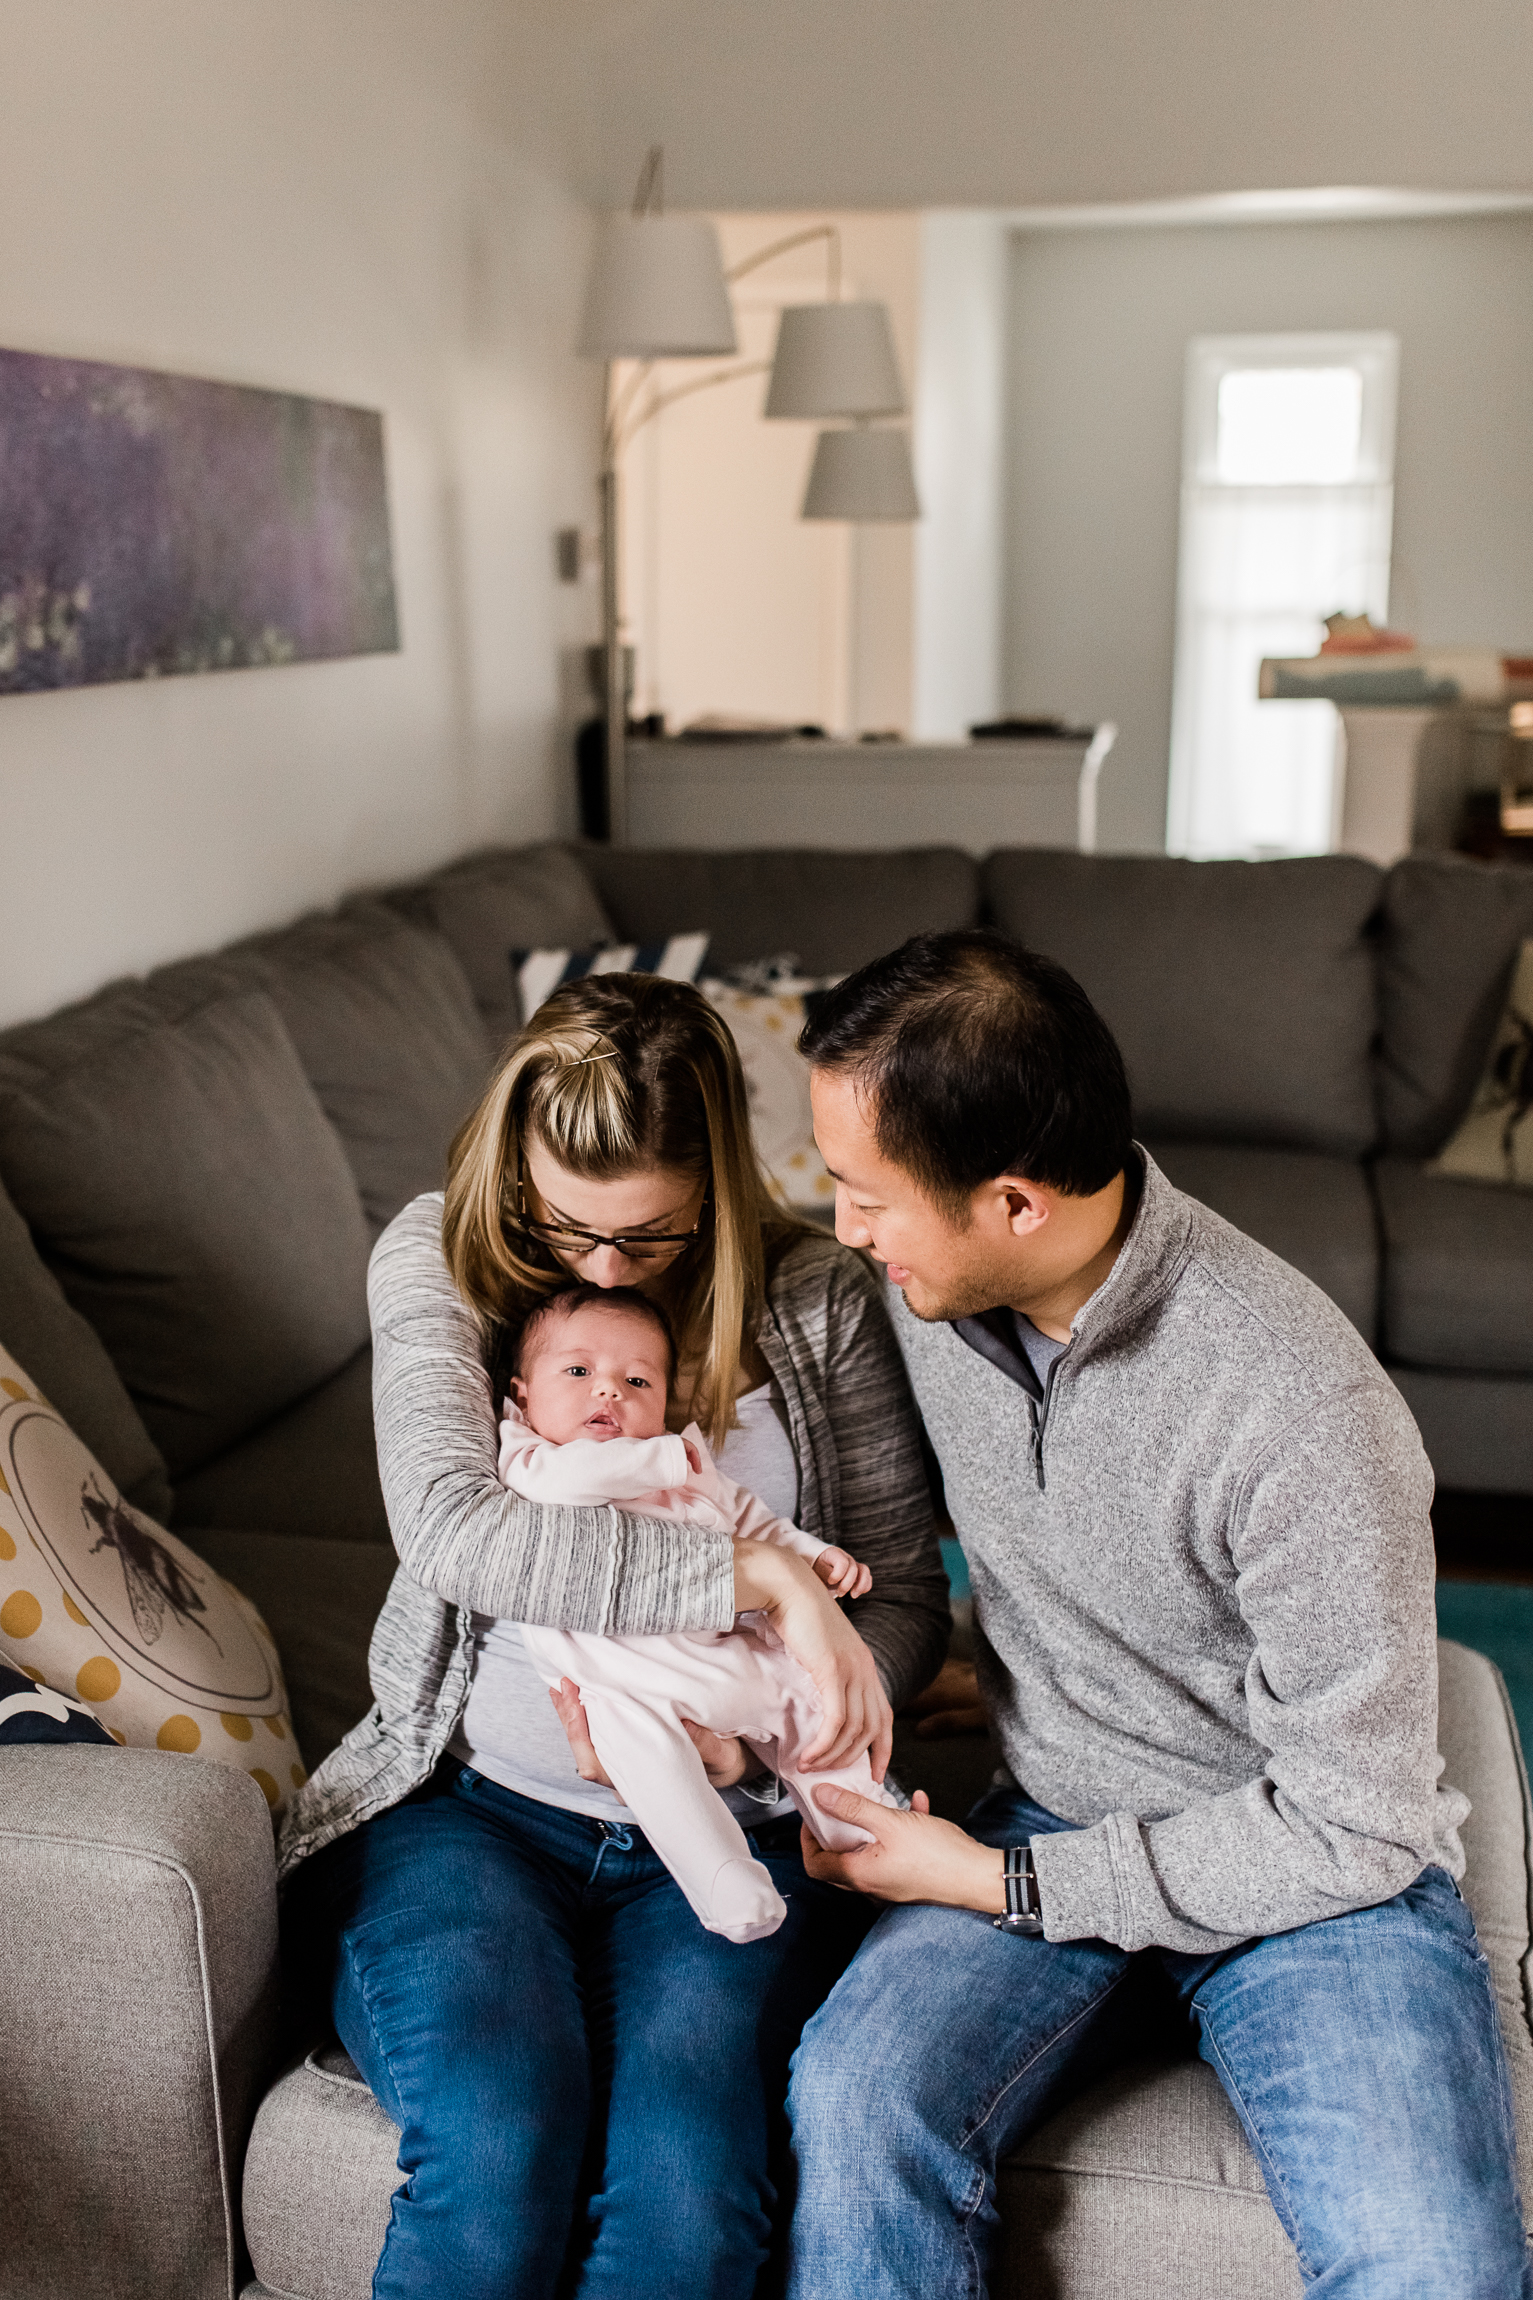 couple holding their newborn baby in the living room, mother kissing her newborn baby's head, Kansas City lifestyle newborn photographer, in-home newborn session